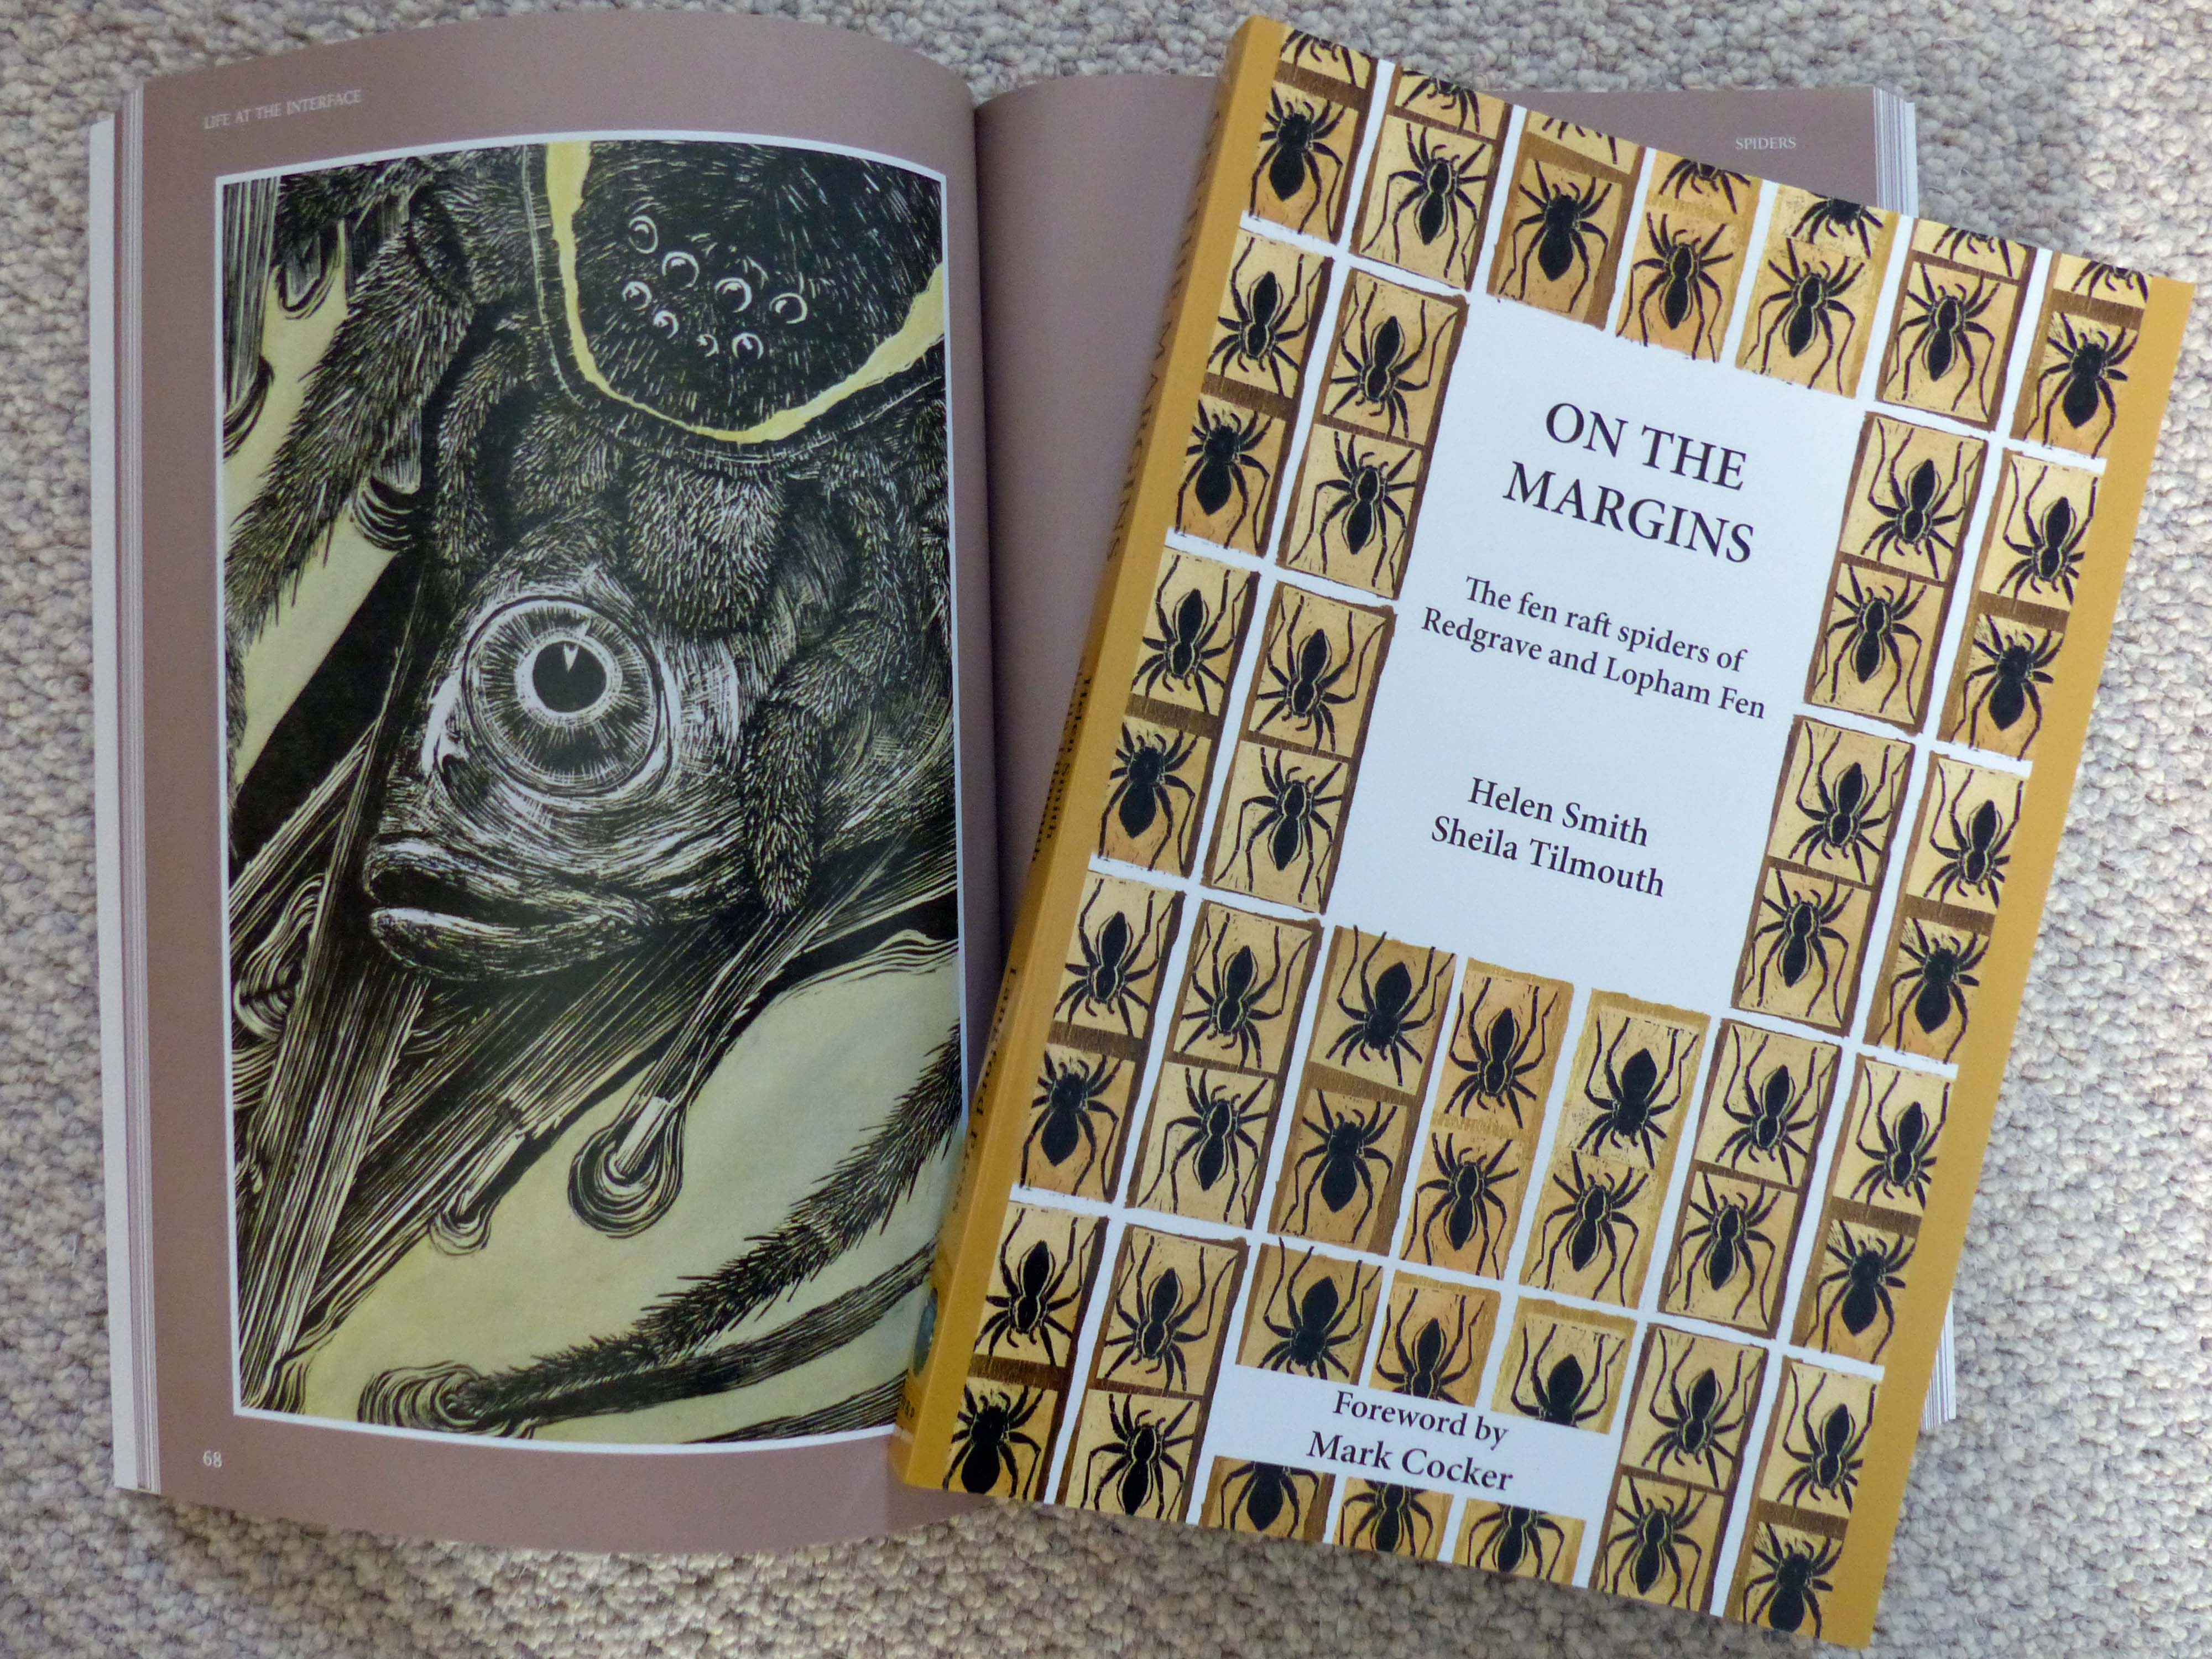 On the Margins by Helen Smith and Sheila Tilmouth